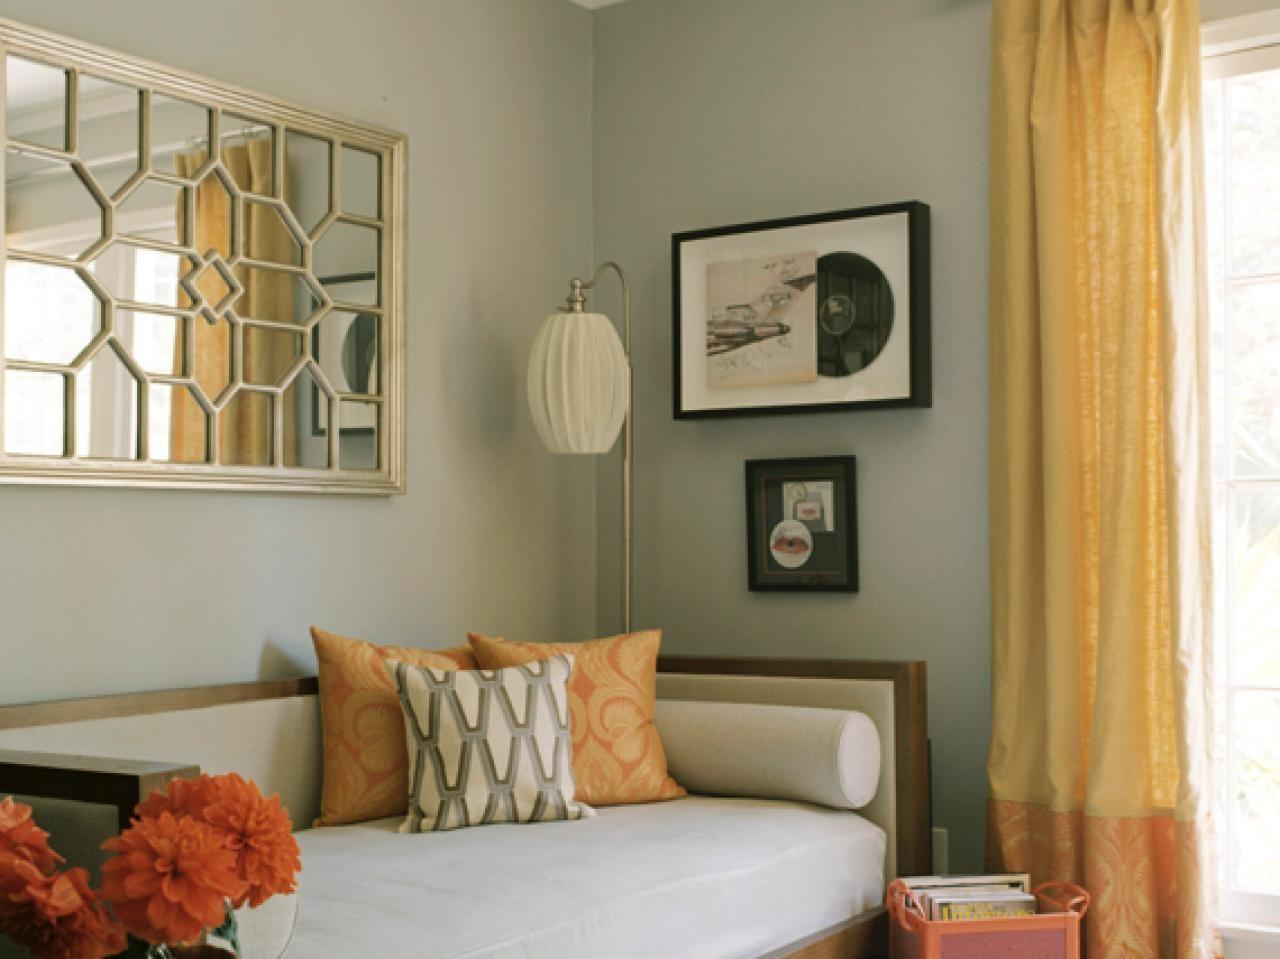 Dreamy Daybeds Adore Bedrooms Bedroom Decorating